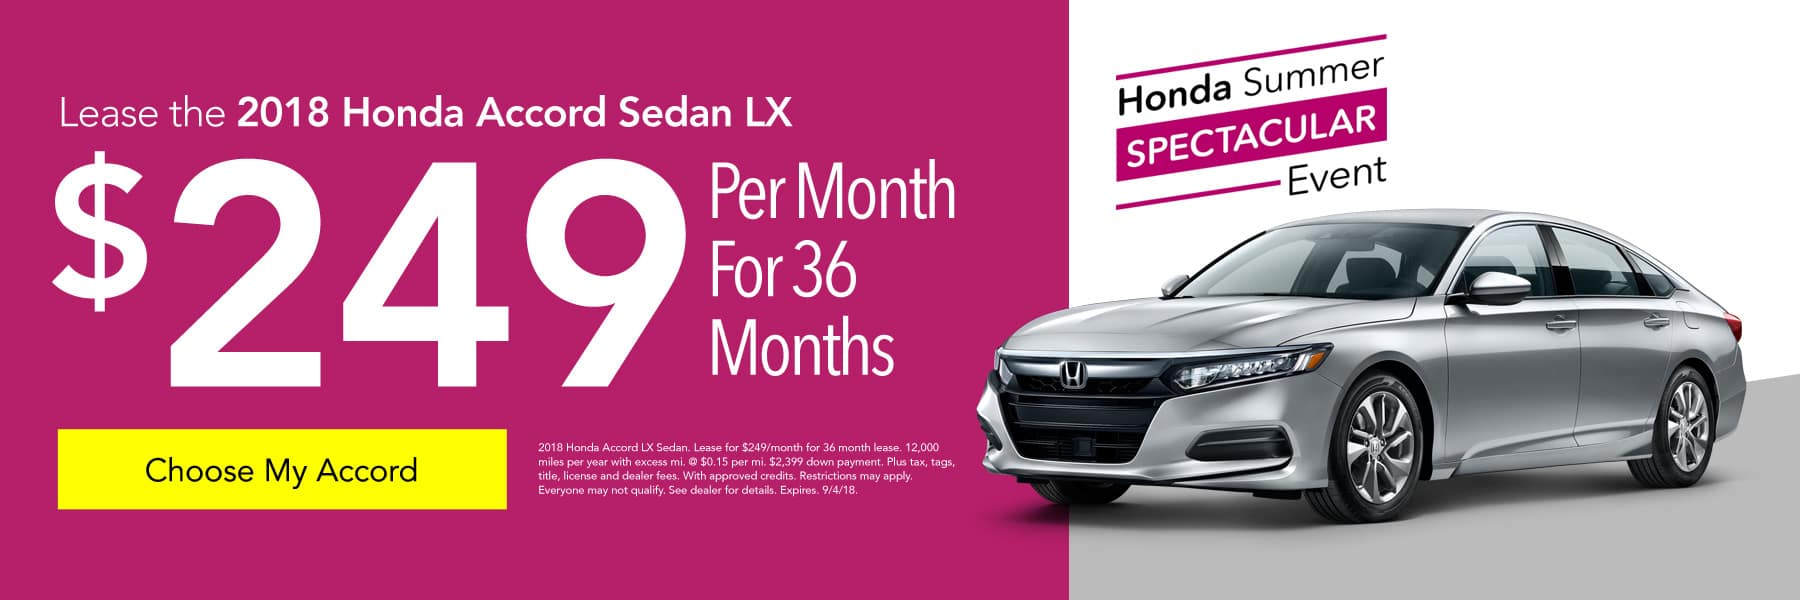 Lease the 2018 Honda Accord Sedan LX for $249/month for 36 months - Choose My Accord